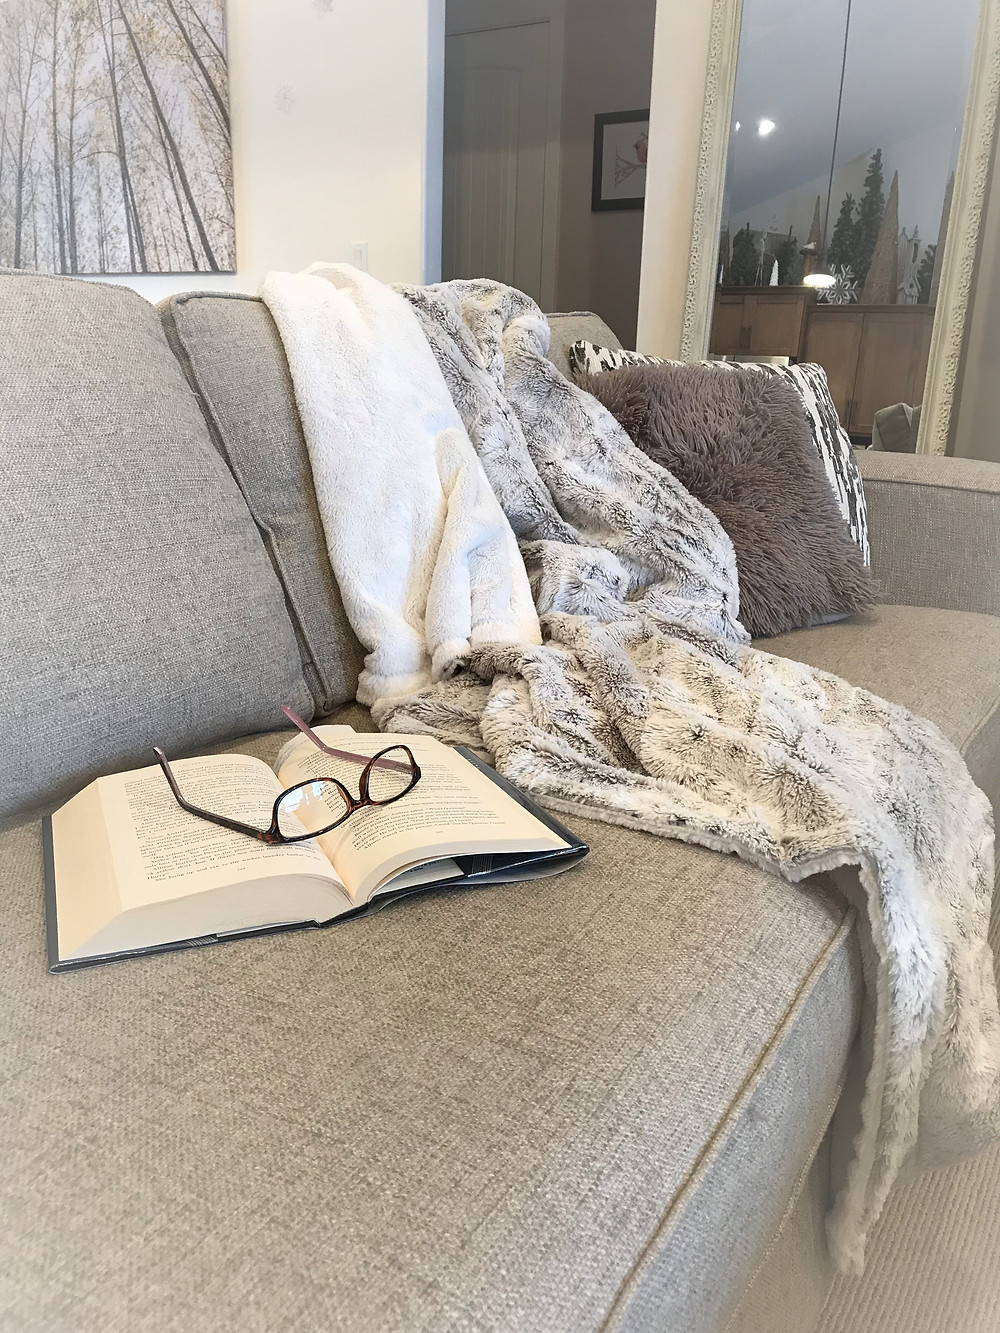 Cozy throw